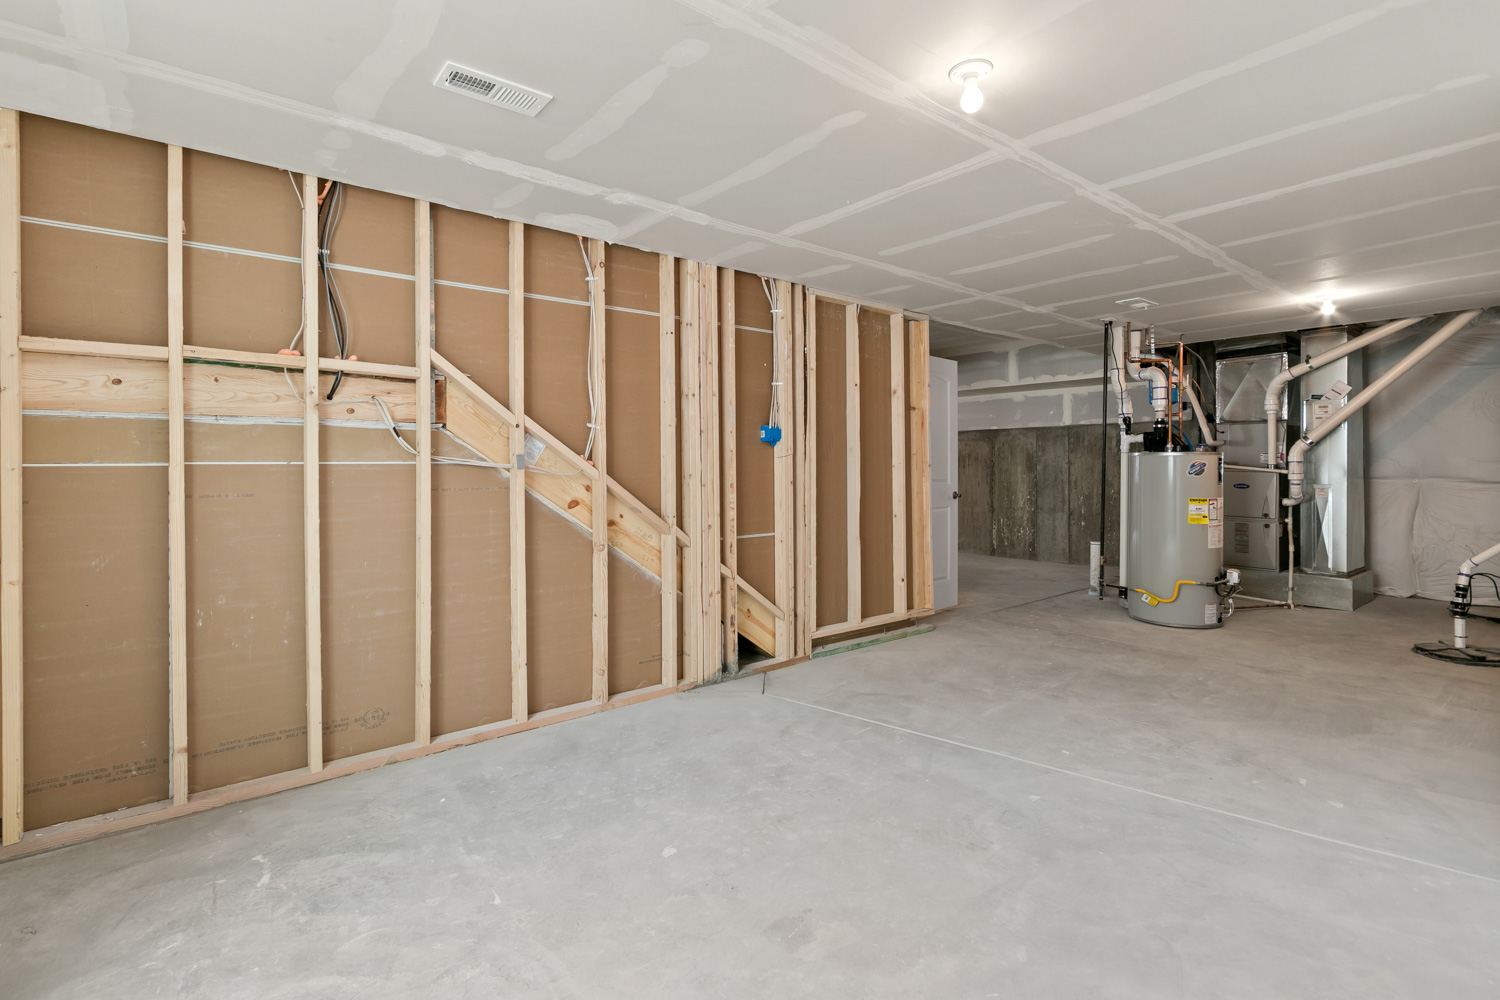 030-Basement-7199-E-163rd-Ave-Large.jpg